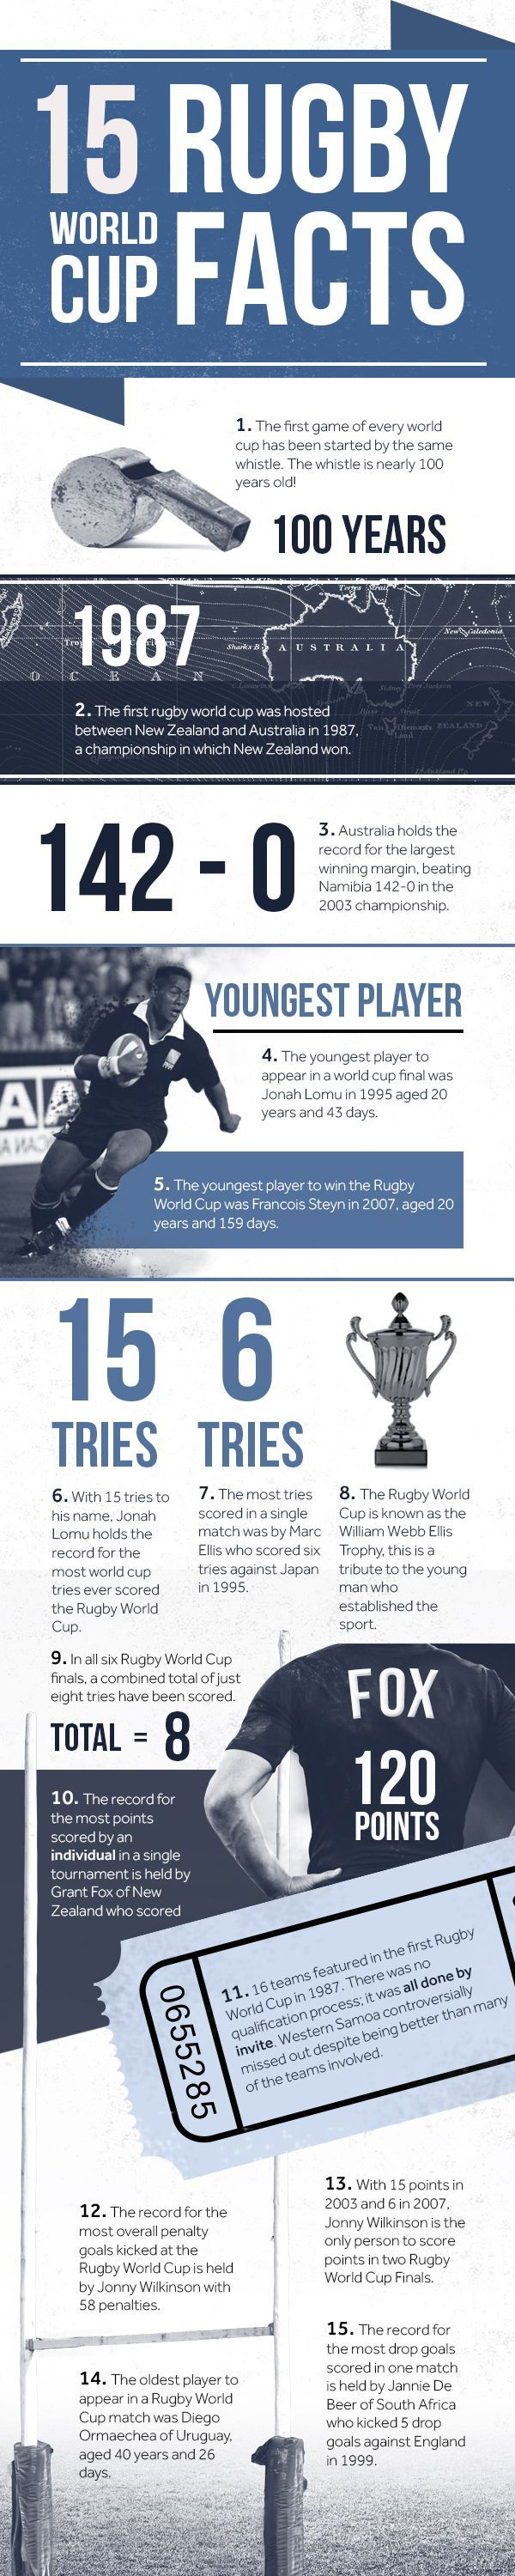 I'm not sure about the first one? But love seeing Jonah is still leading a few records. Don't think that'll change anytime soon...